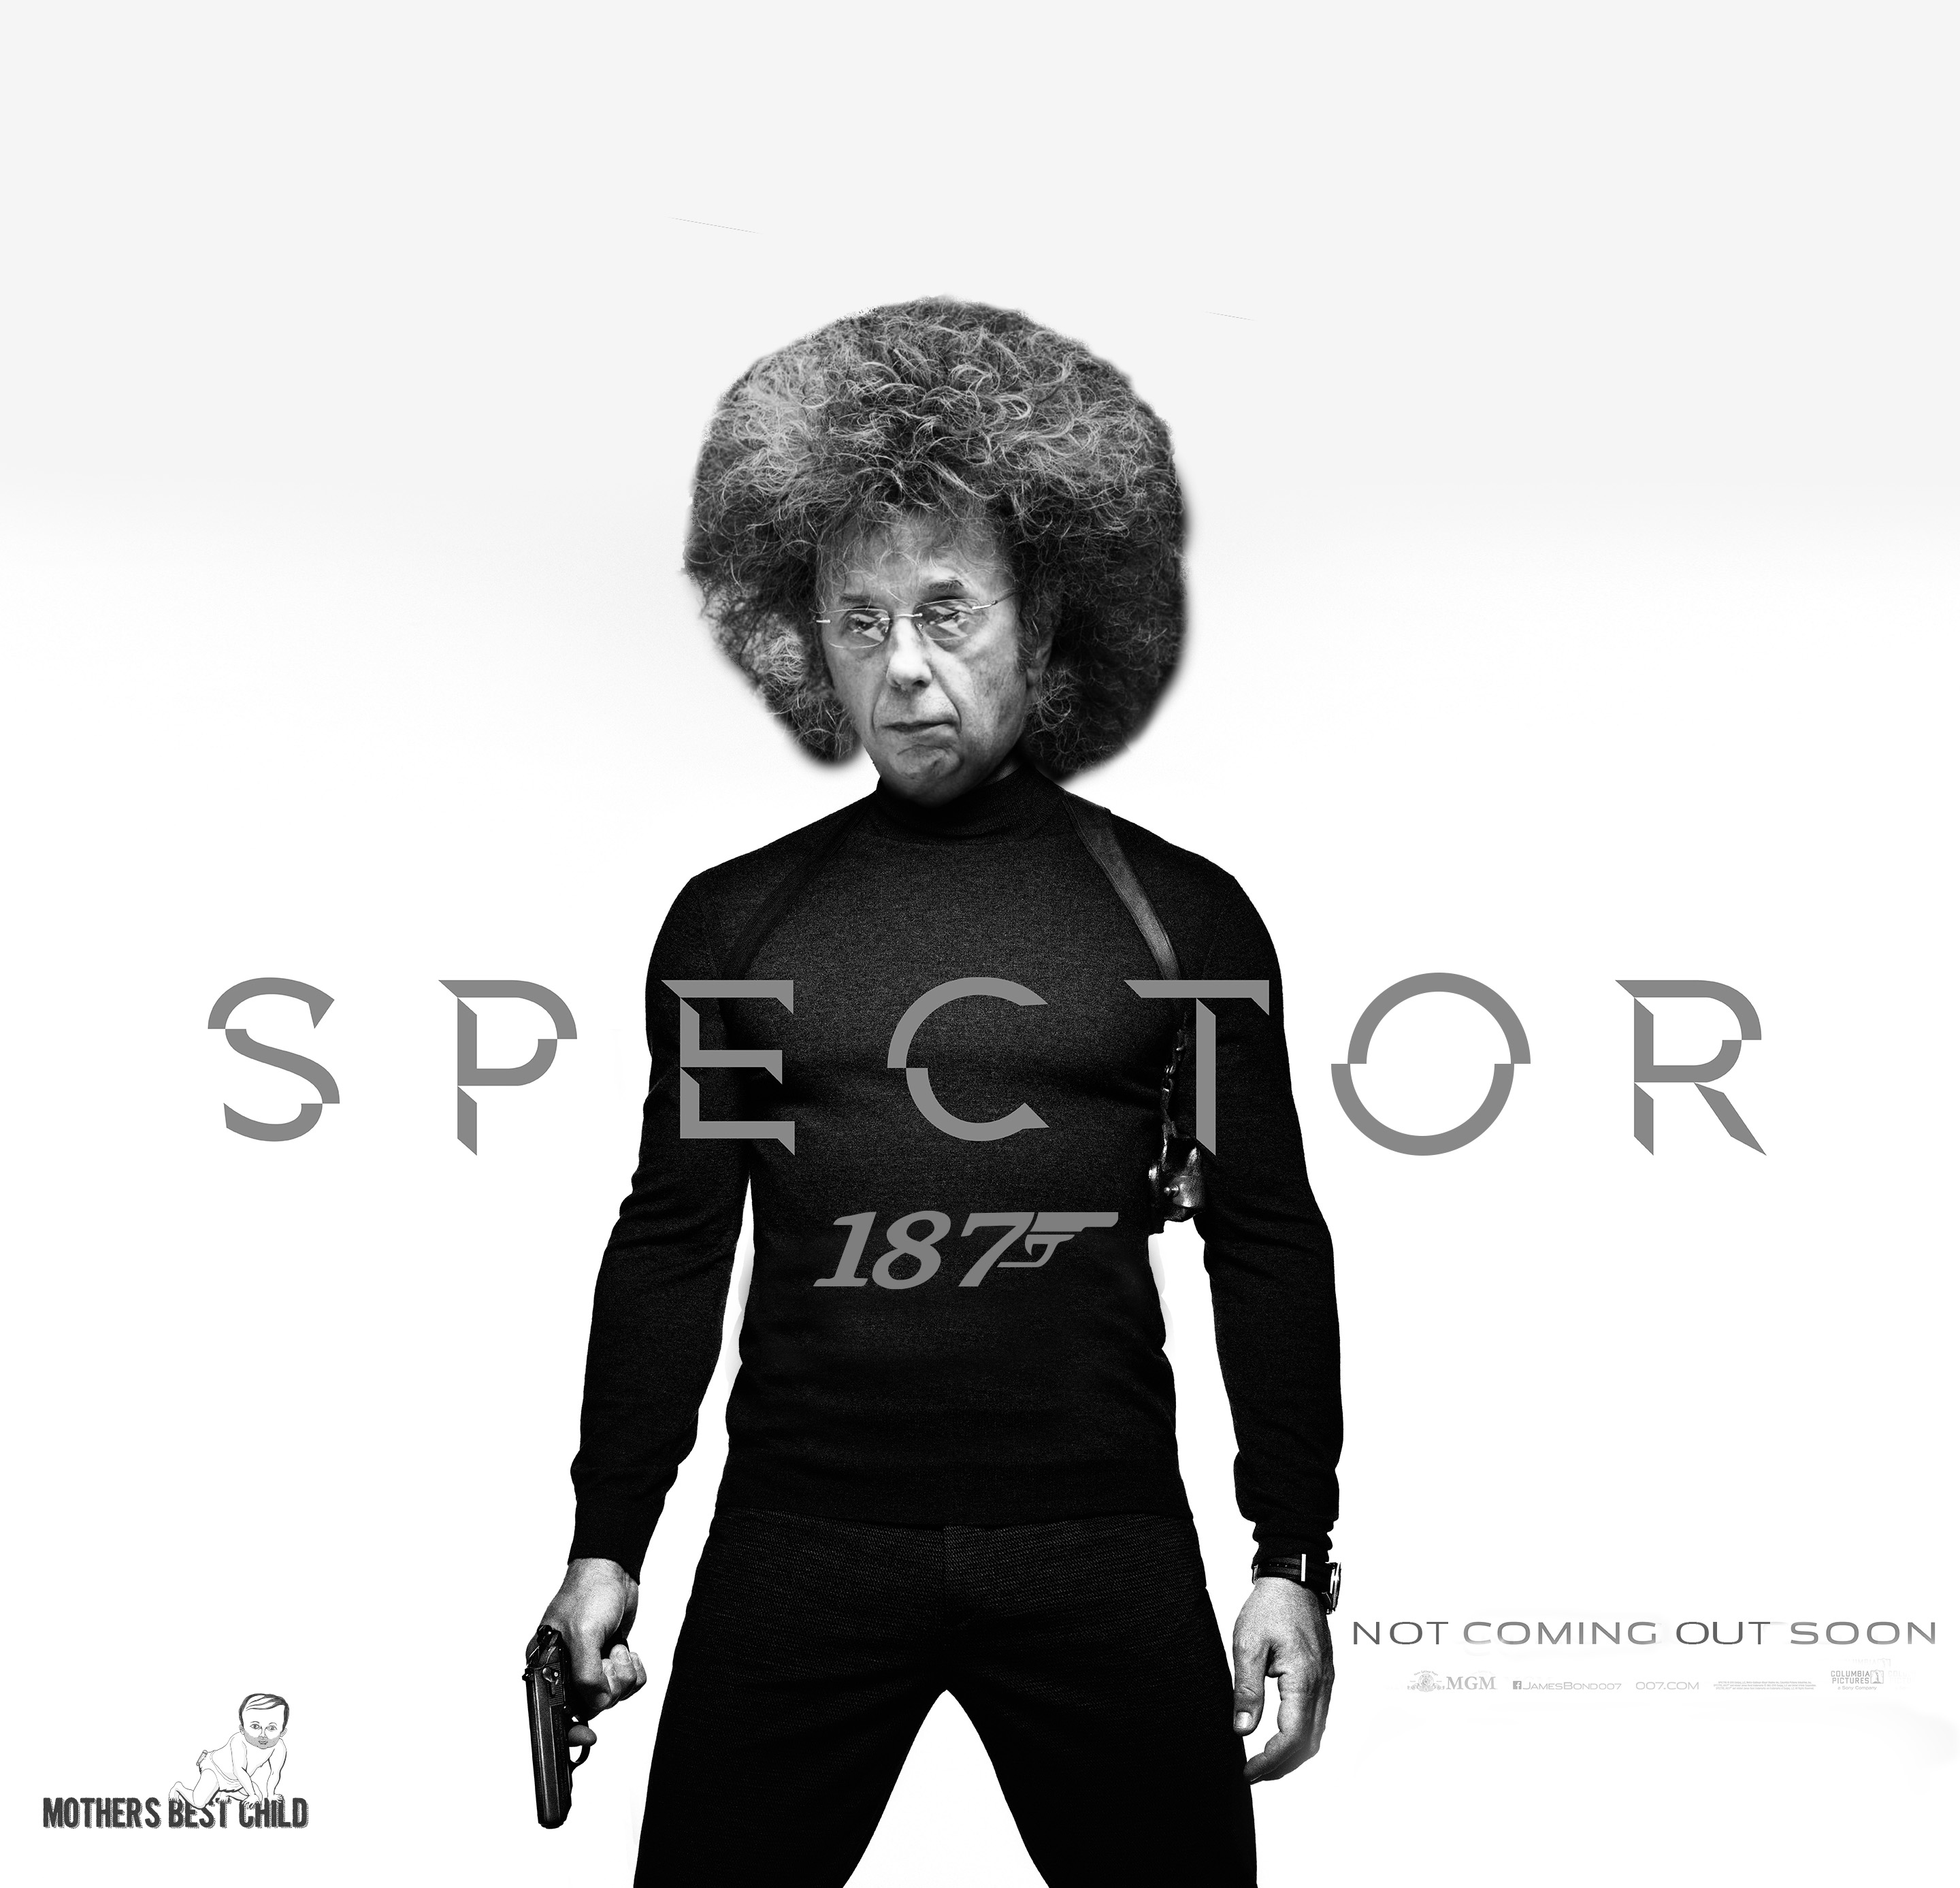 007 background image - Q 007 Images Spector Hd Wallpaper And Background Photos